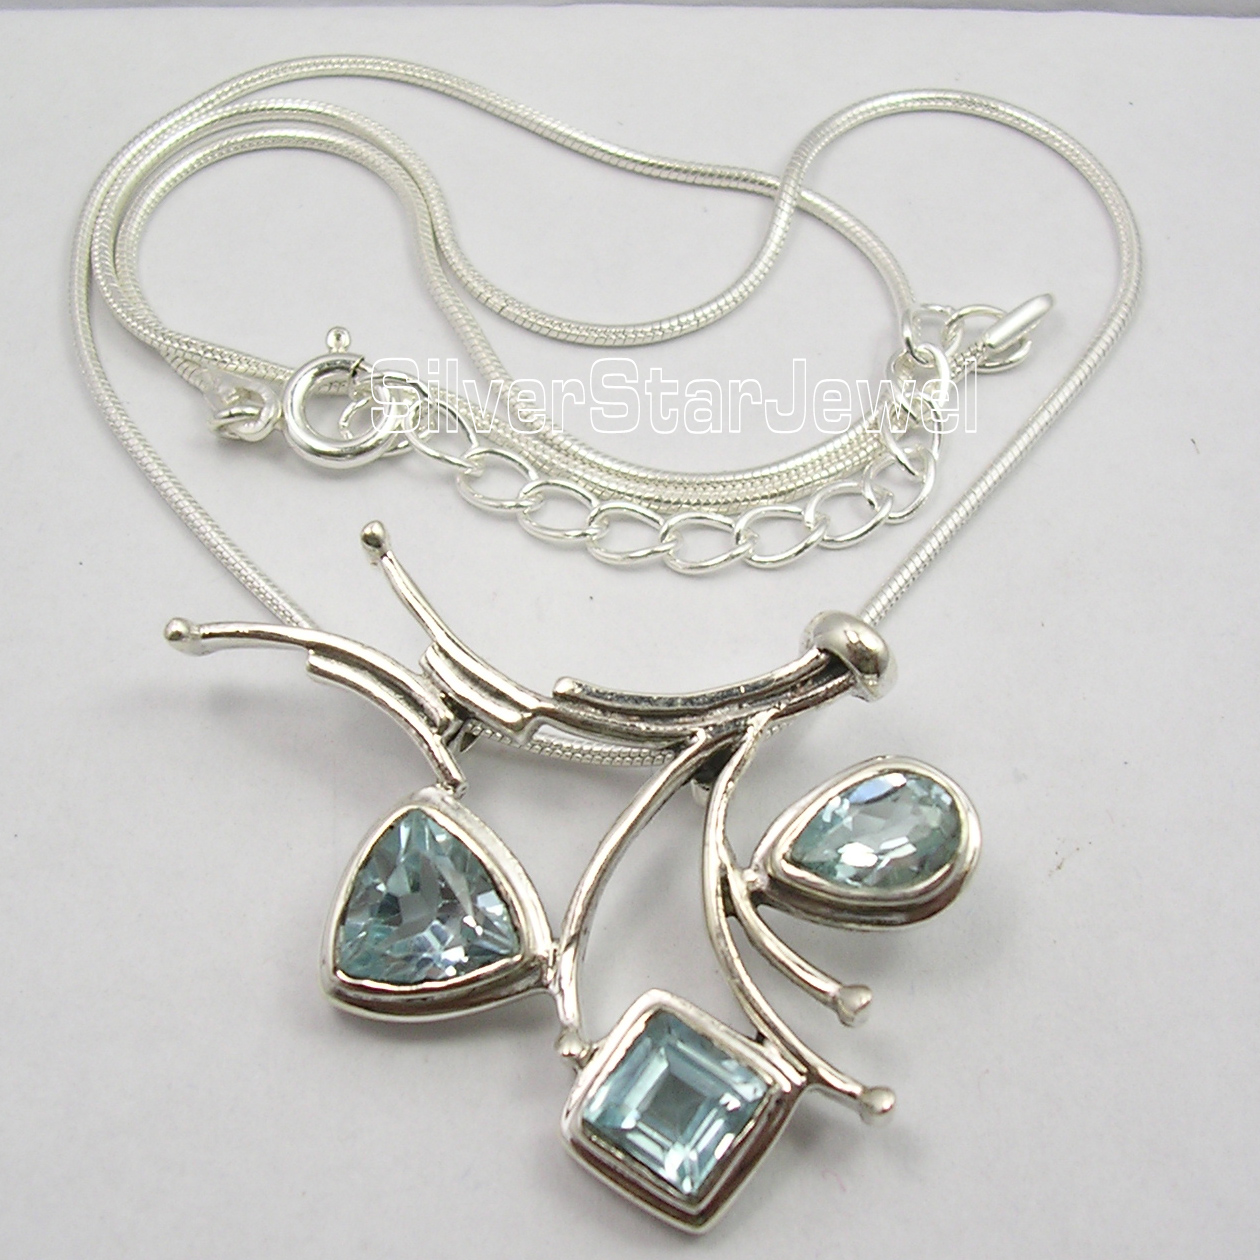 Cari Internationale Argent Pur À Collectionner CUT BLUE Topas 3 Gemset INHABITUEL Collier 18.5 Pouces